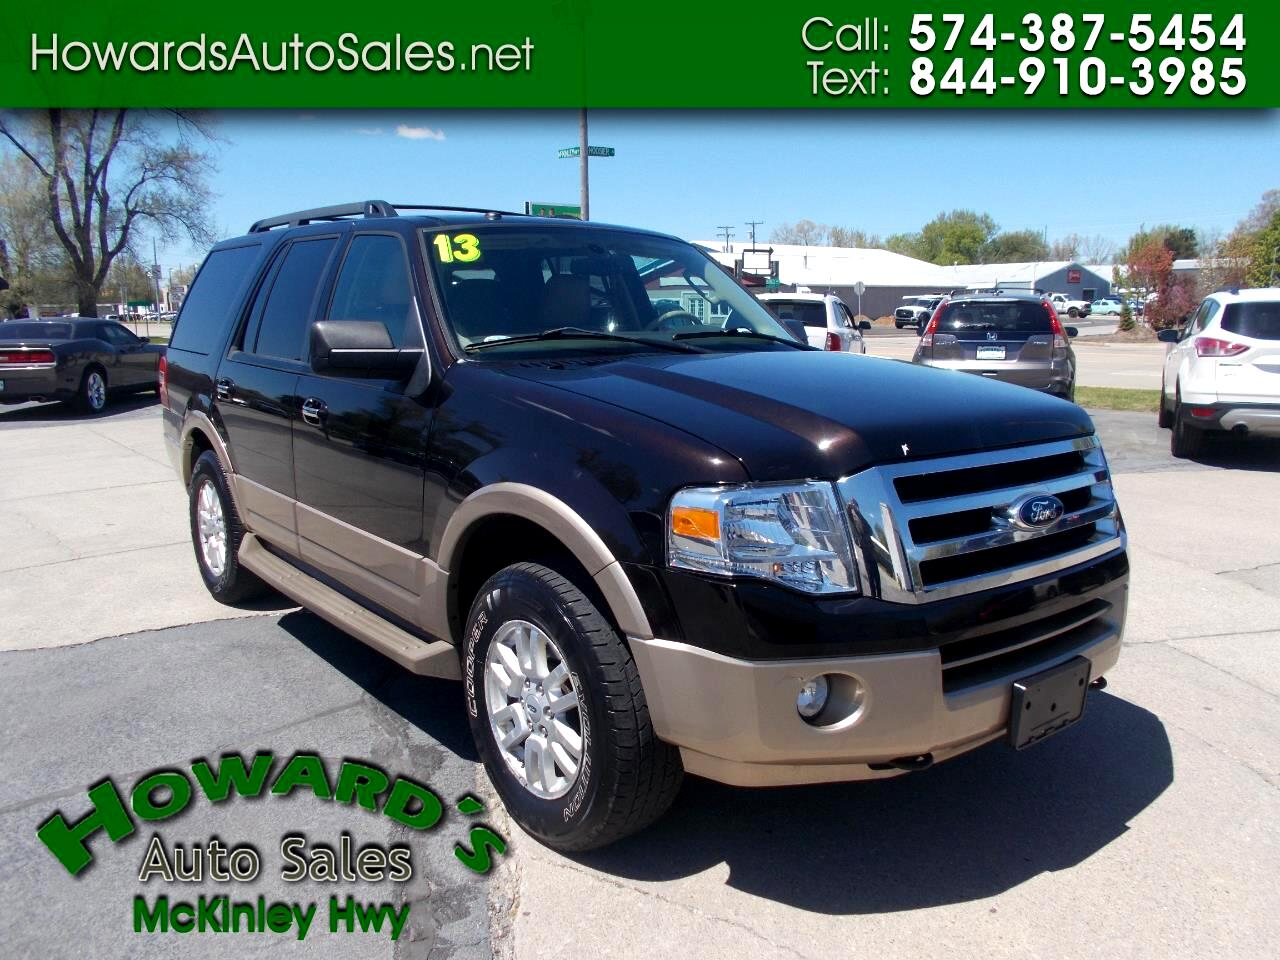 Ford Expedition 5.4L XLT 4WD 2013